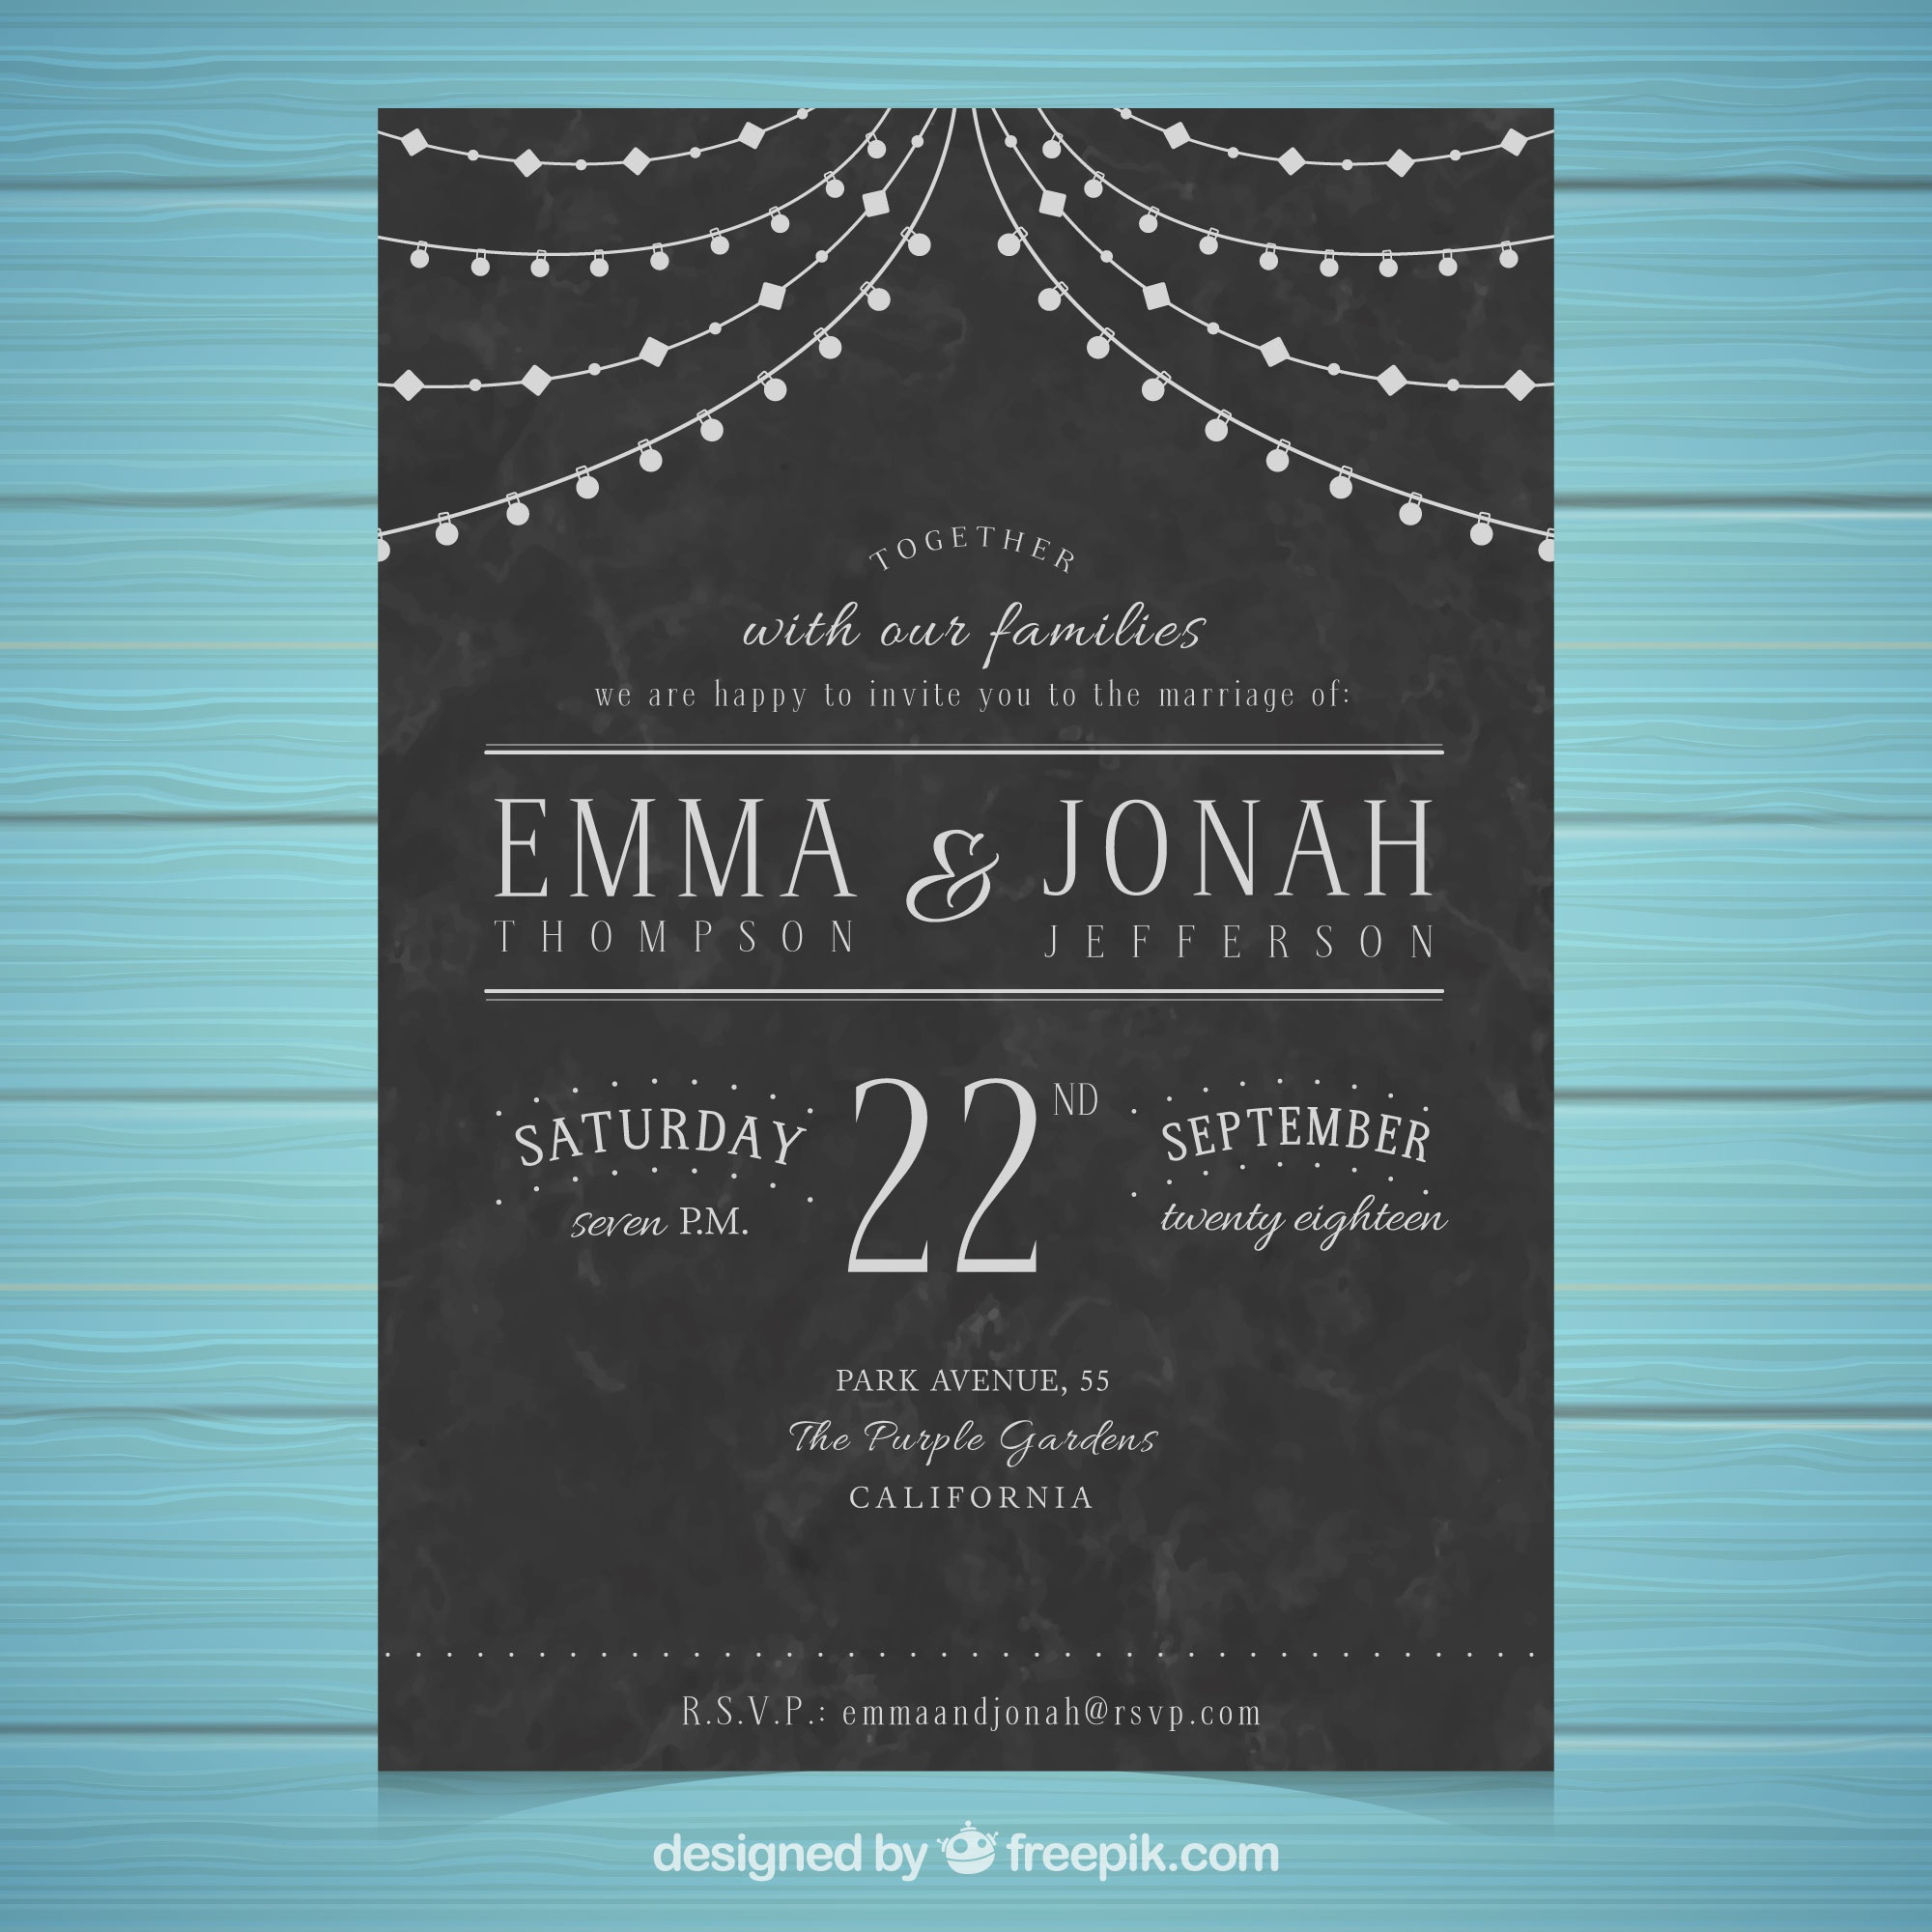 Wedding invitation template with vintage style